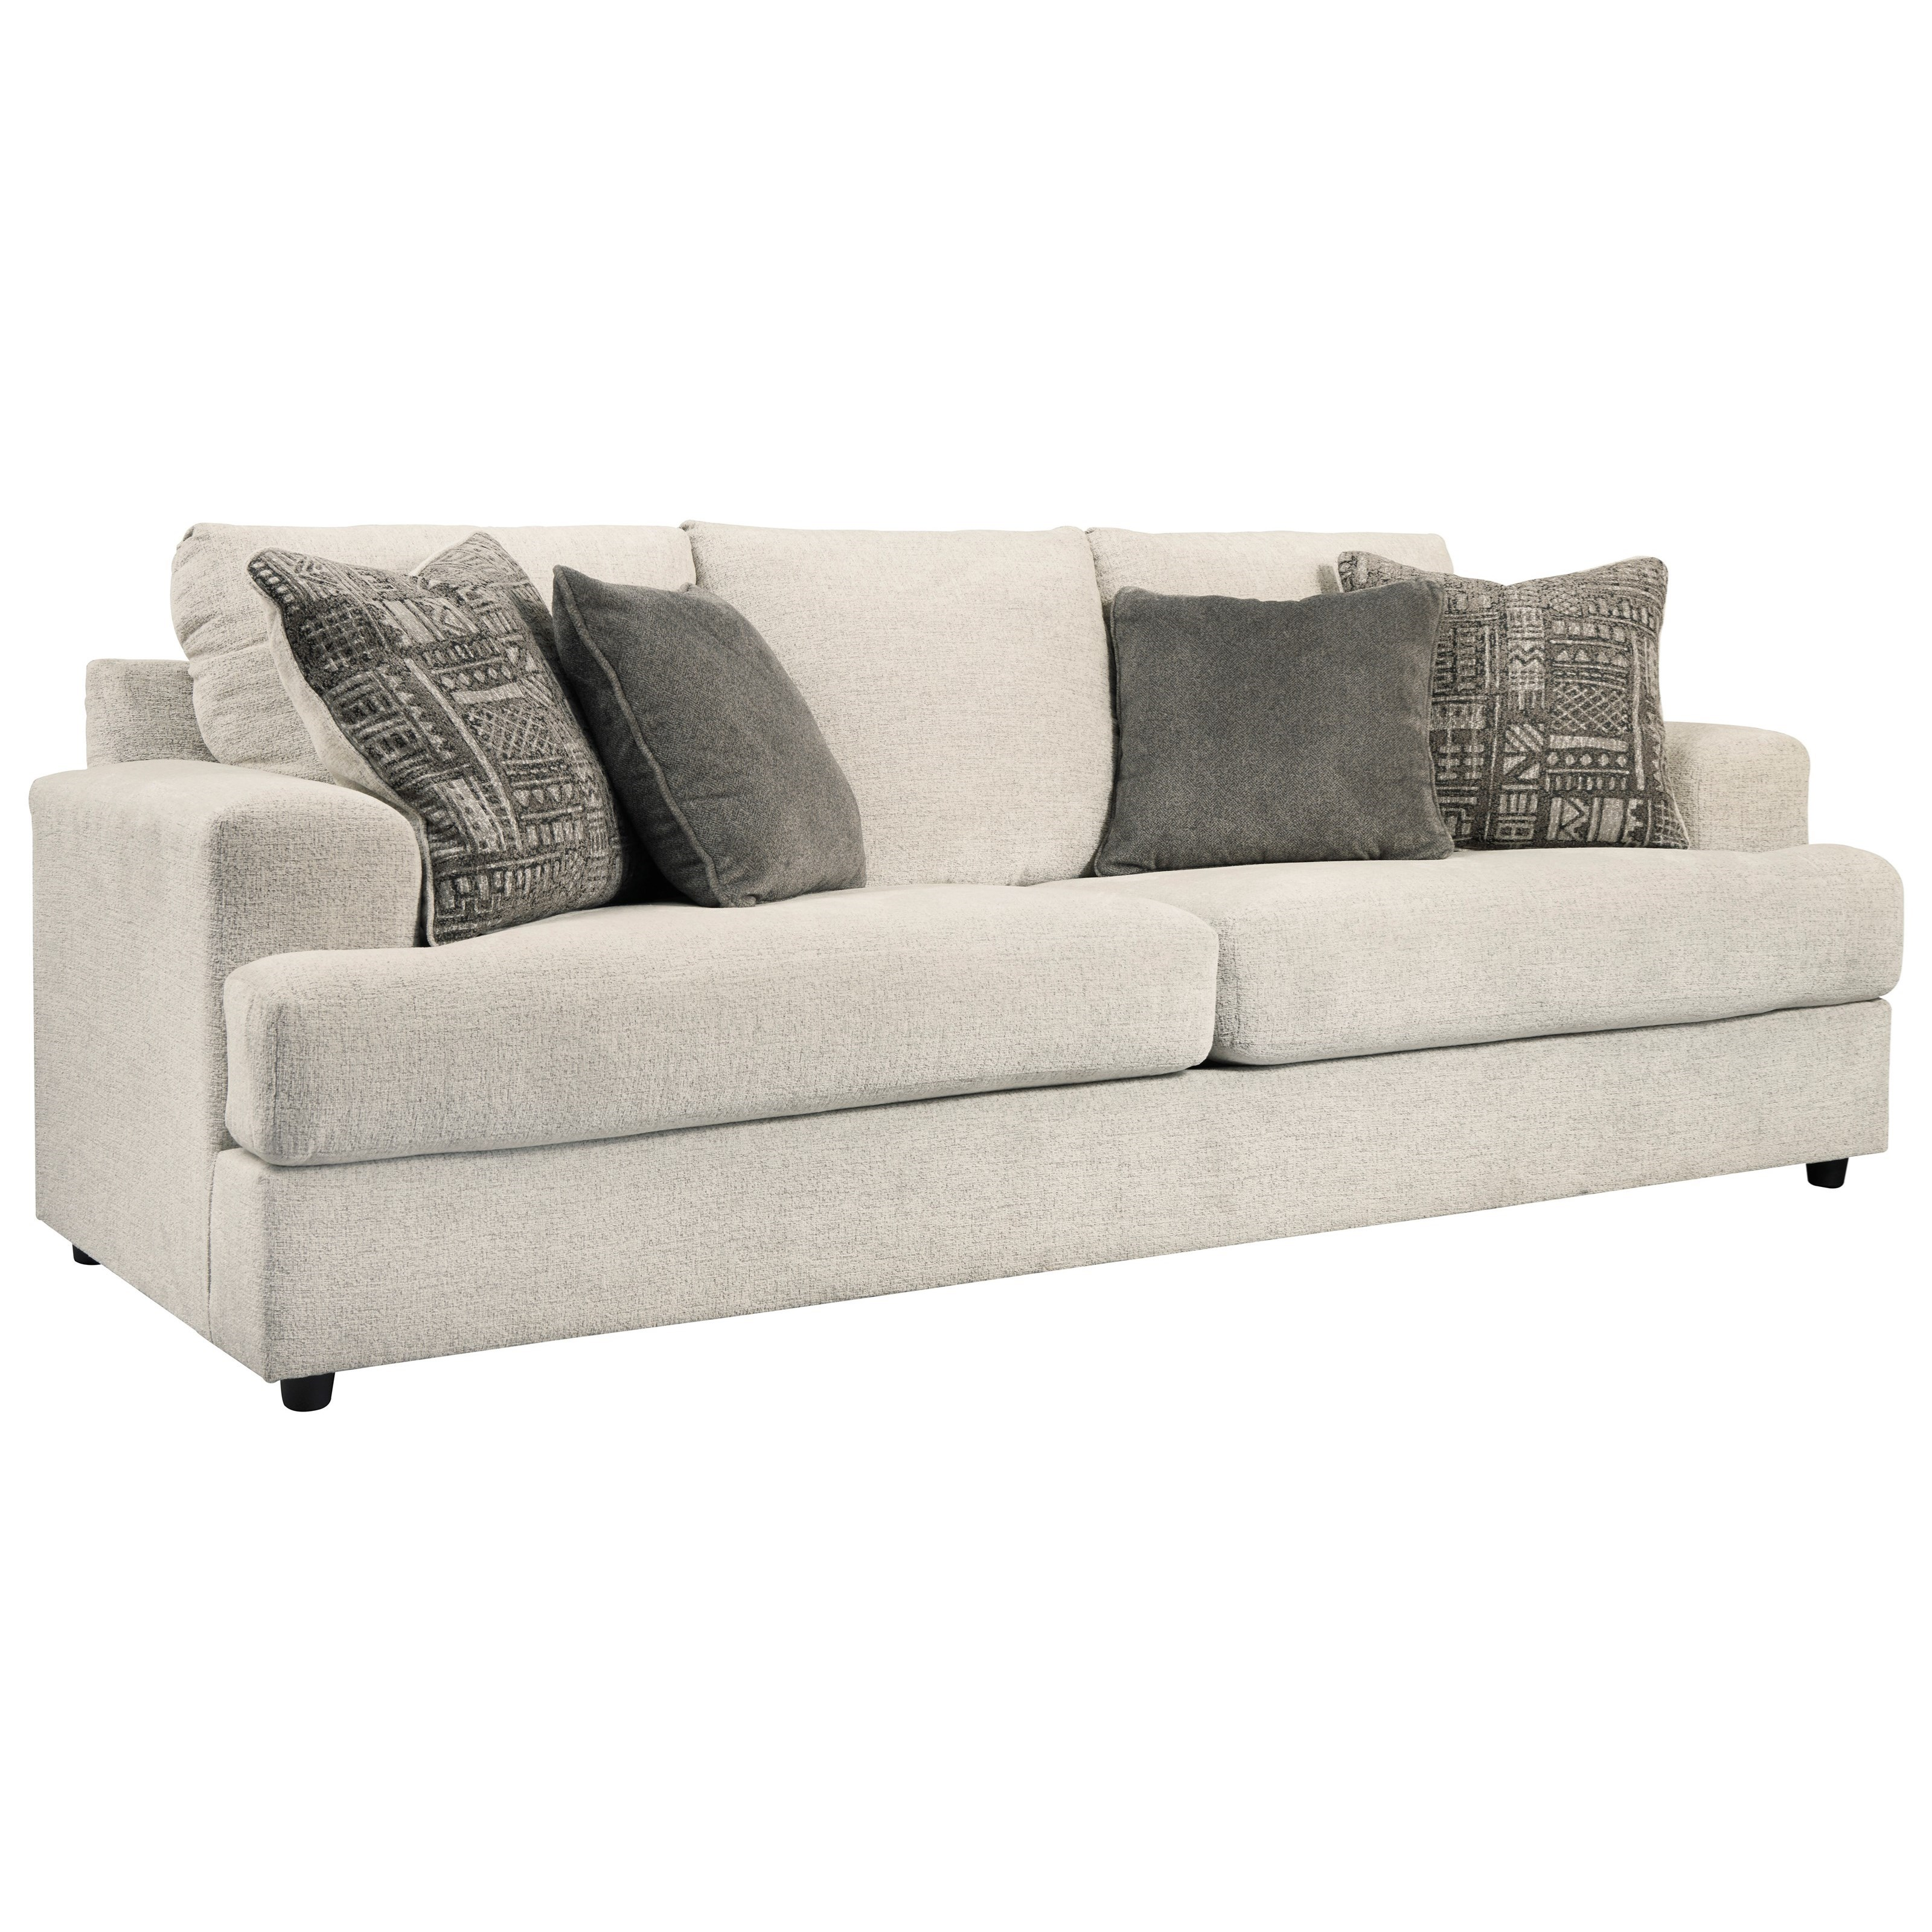 Soletren Sofa by Signature at Walker's Furniture